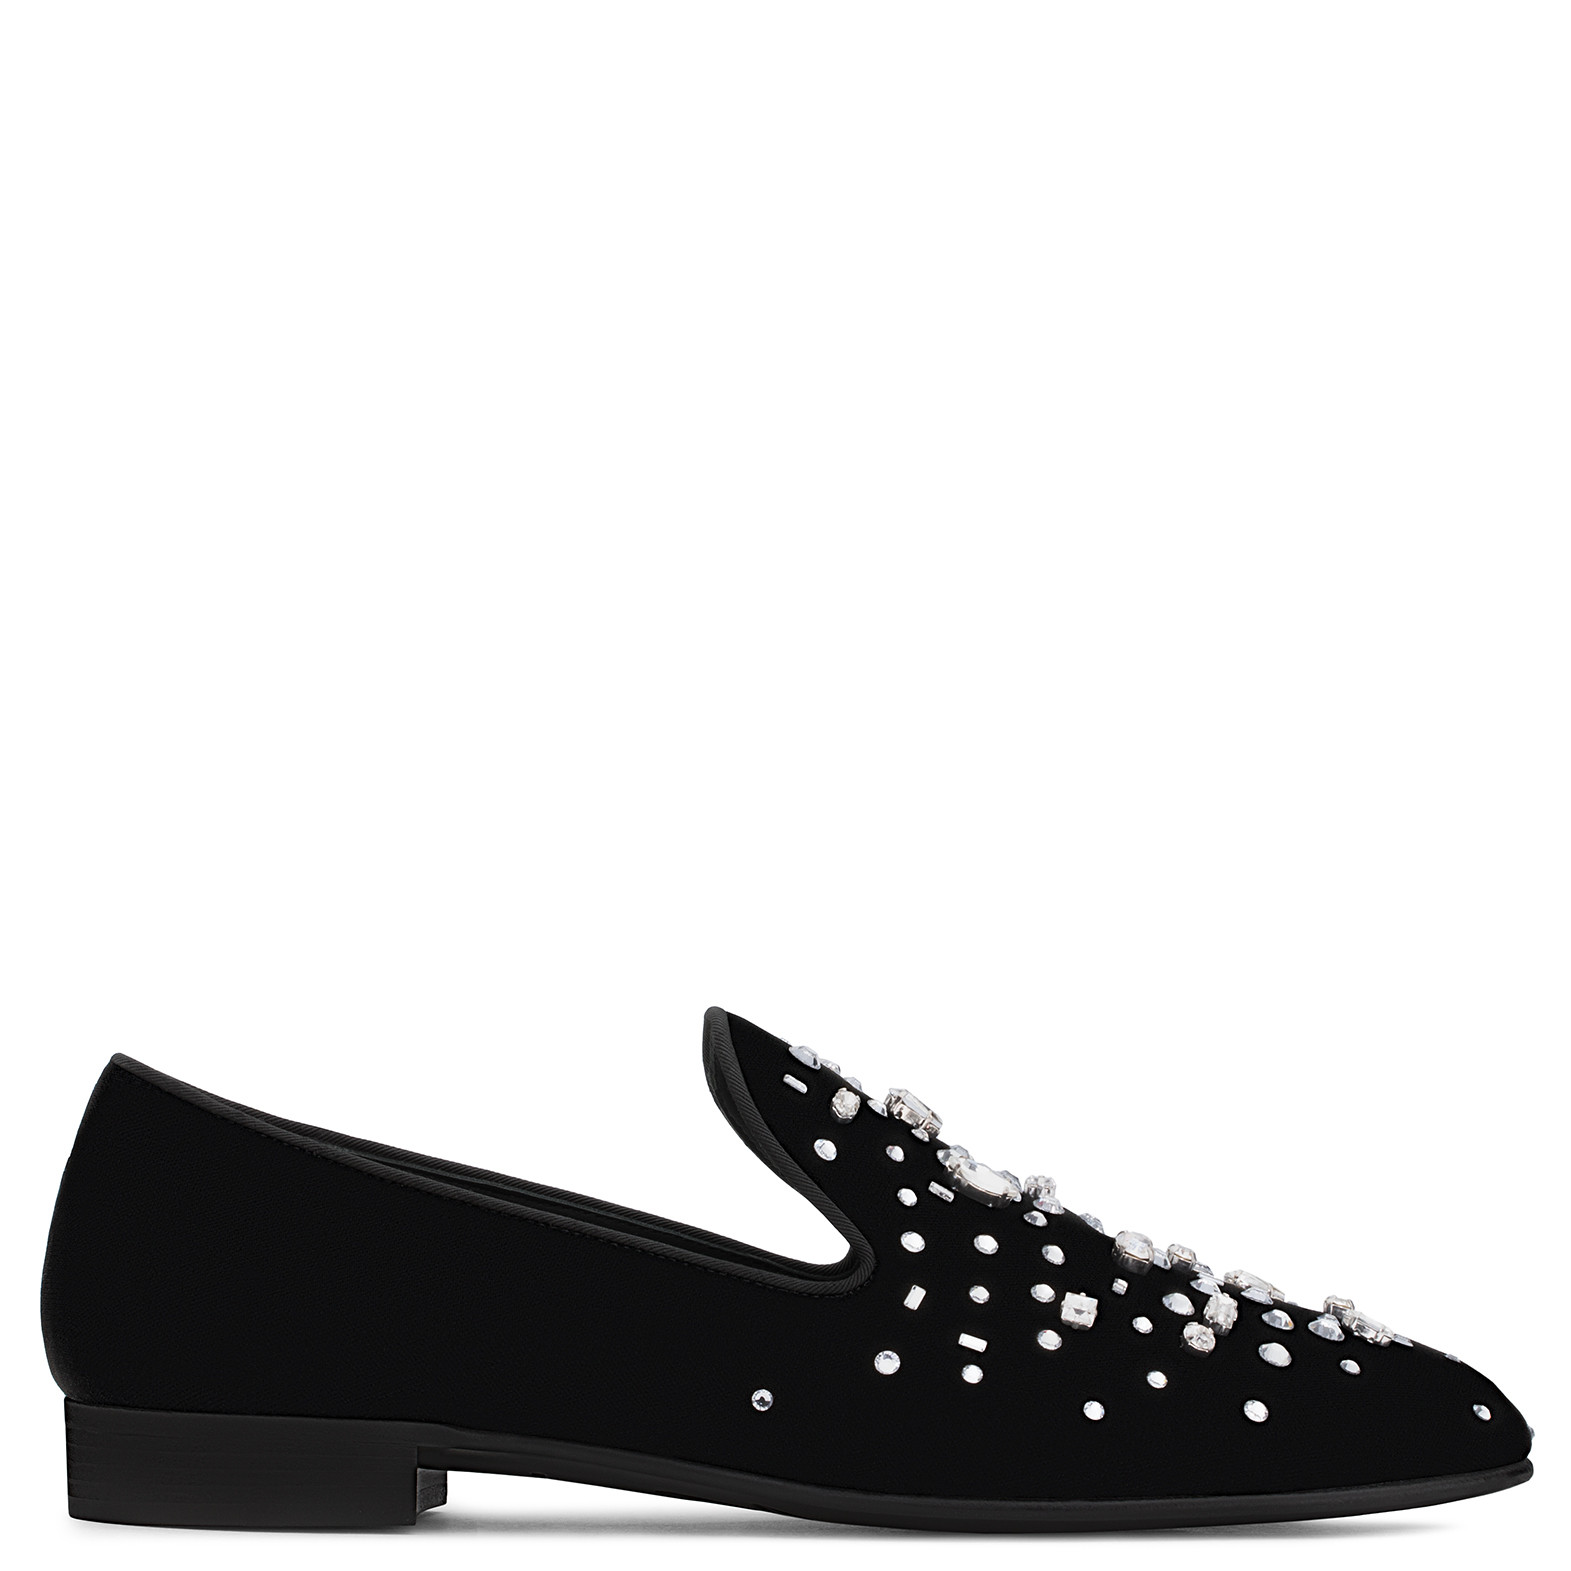 Giuseppe ZanottiDenim and black leather loafer with crystals REFLECT BkIScj0